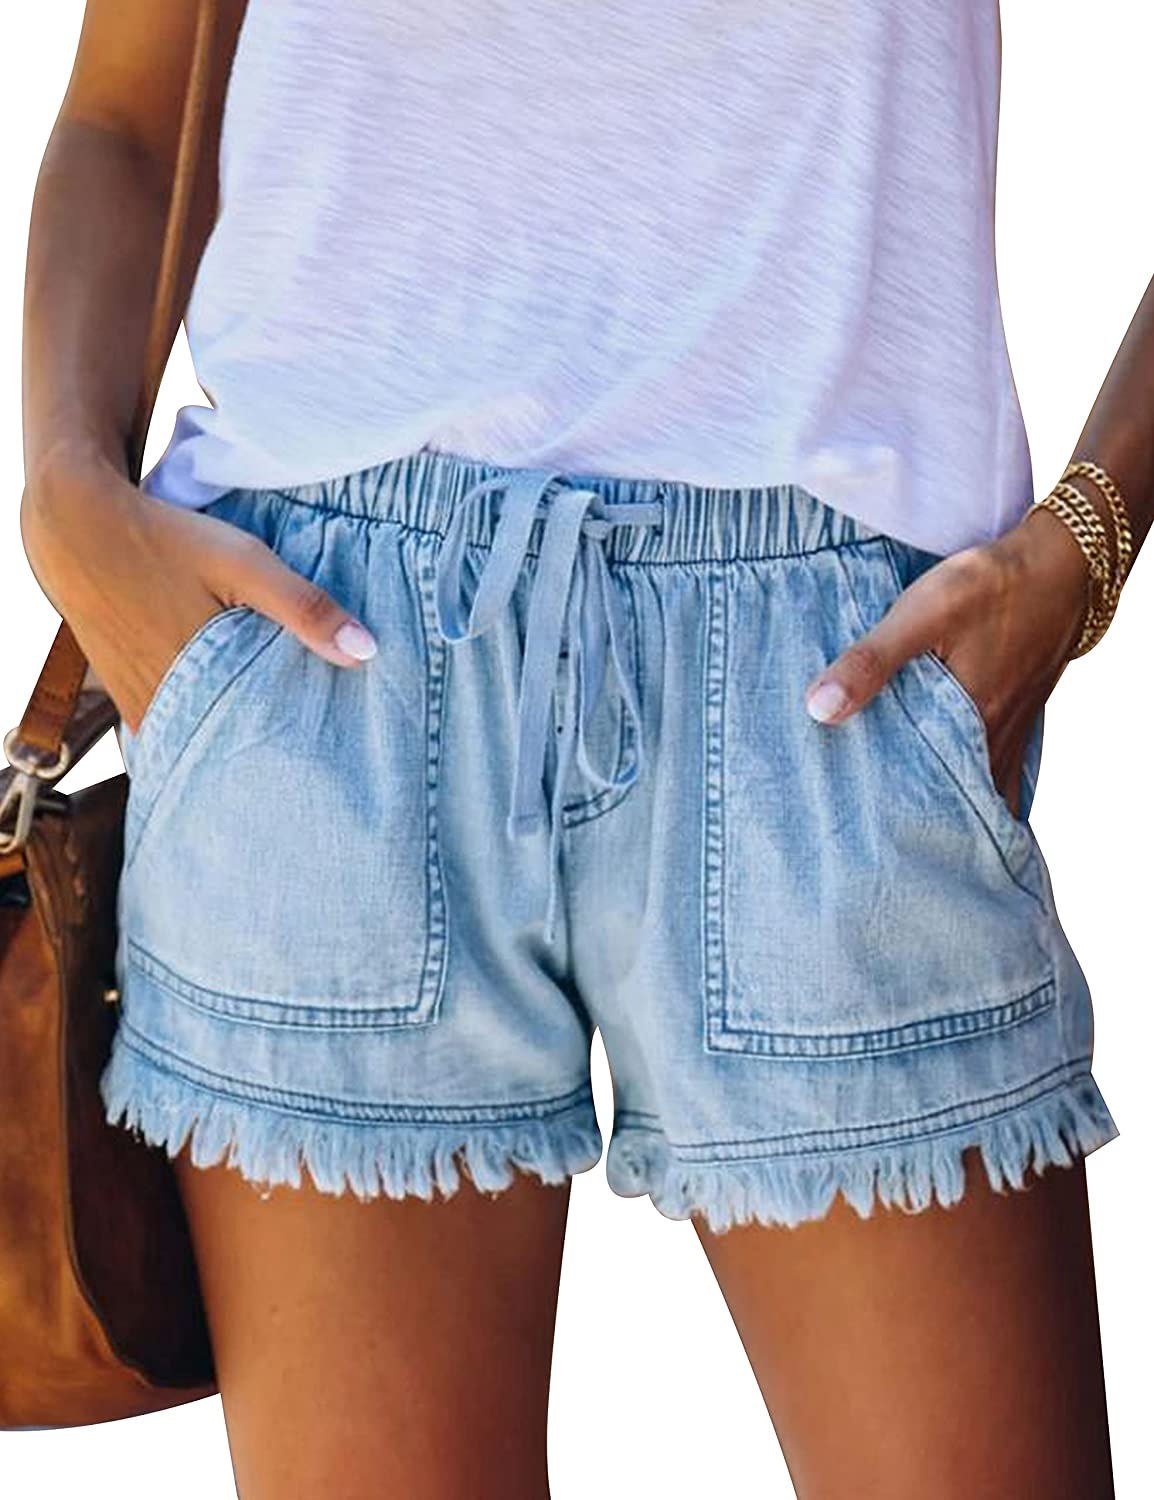 Lentta Women's Denim Shorts Casual High Waisted Frayed Jeans Shorts with Pockets